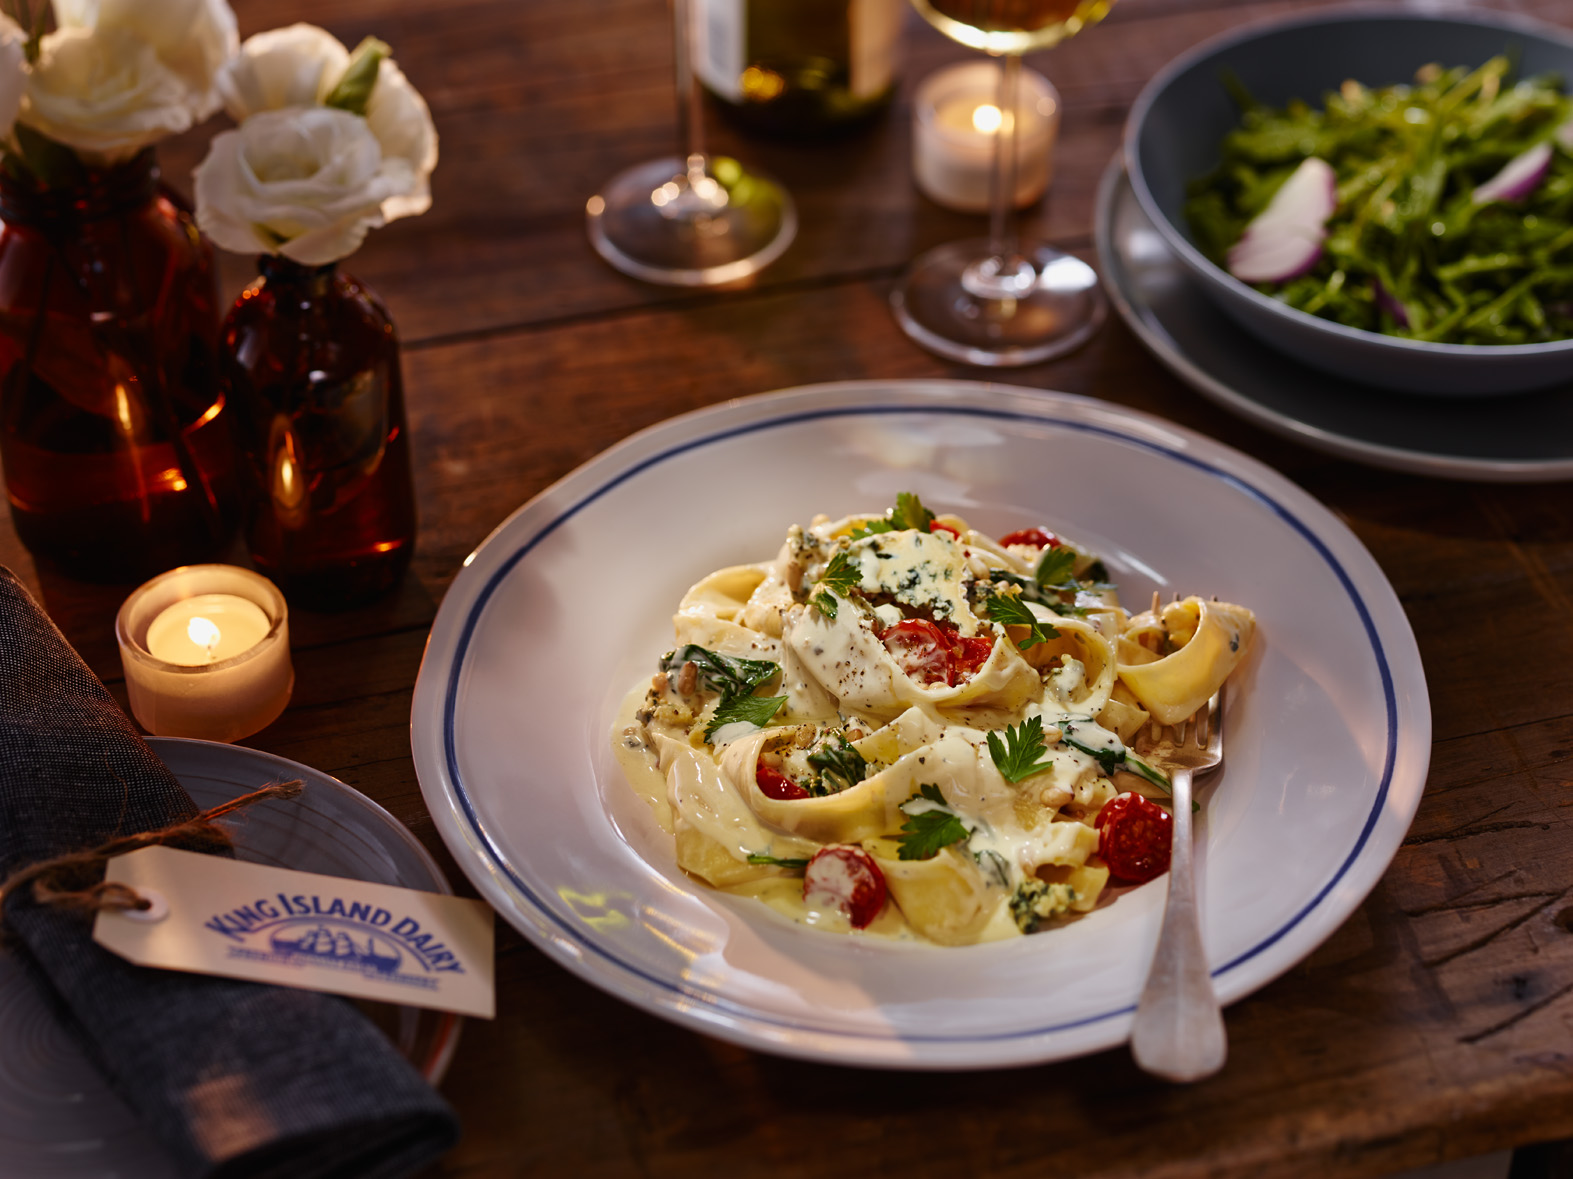 Blue Cheese Pappardelle with Spinach and Slow Roasted Tomatoes